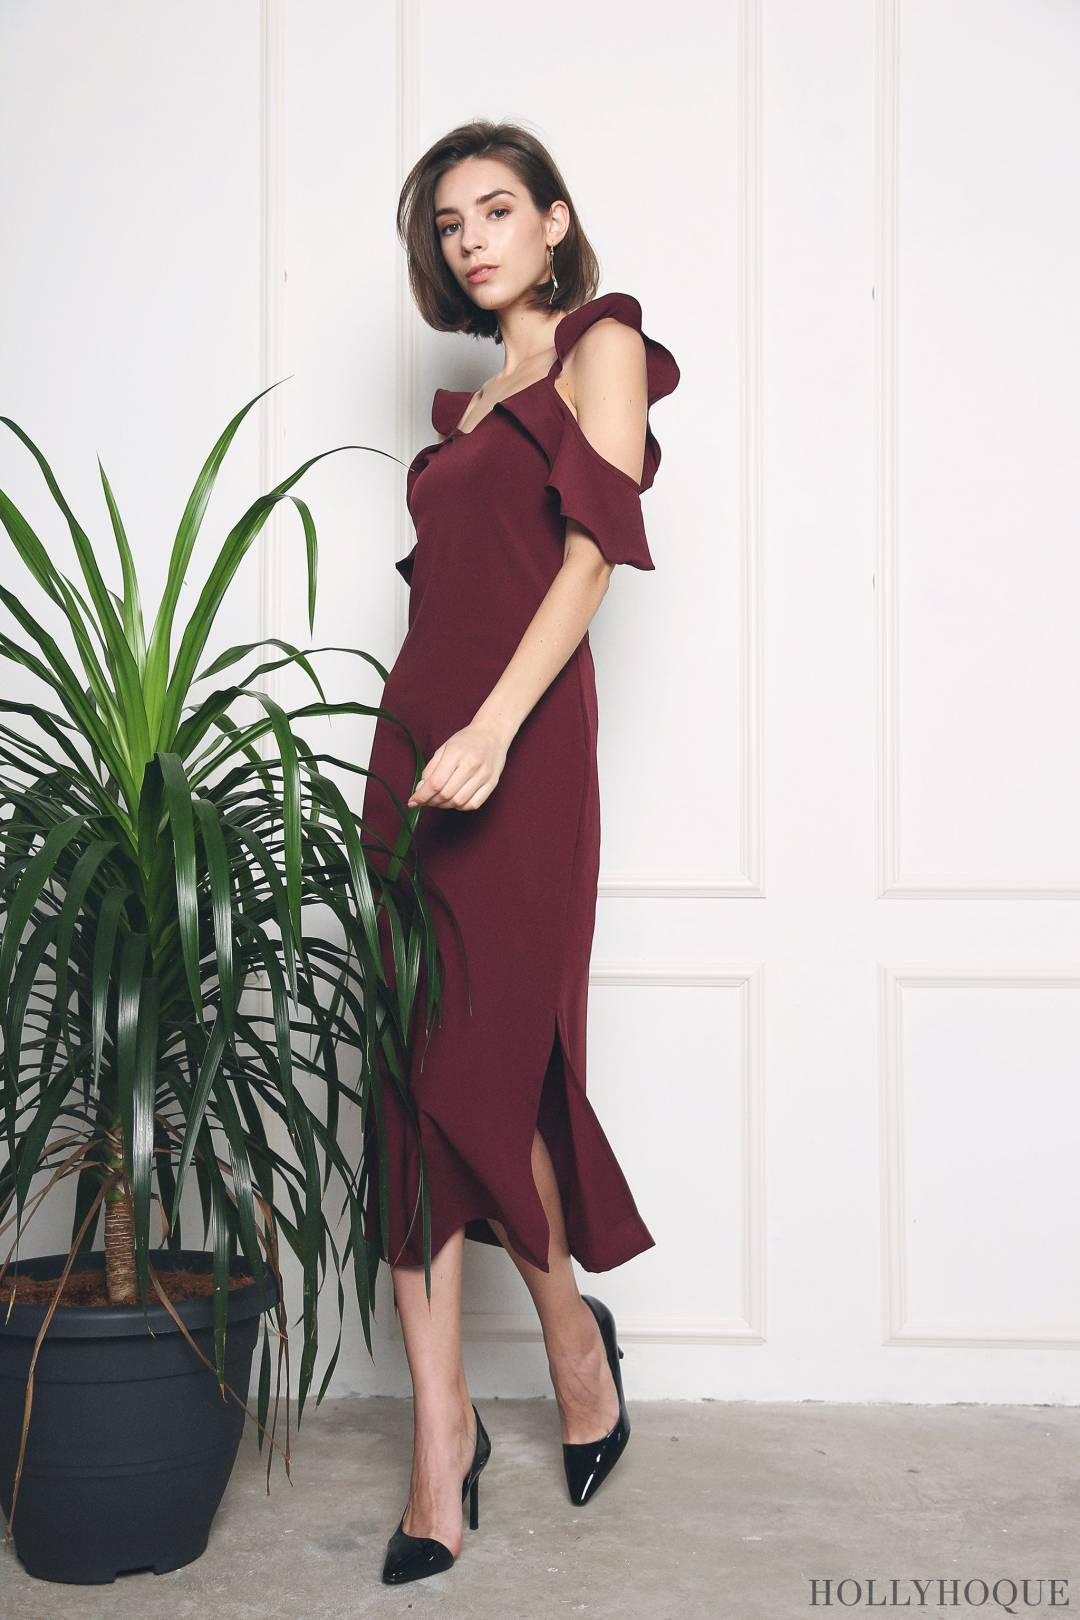 Yamy Ruffles Slit Midi Dress Burgundy